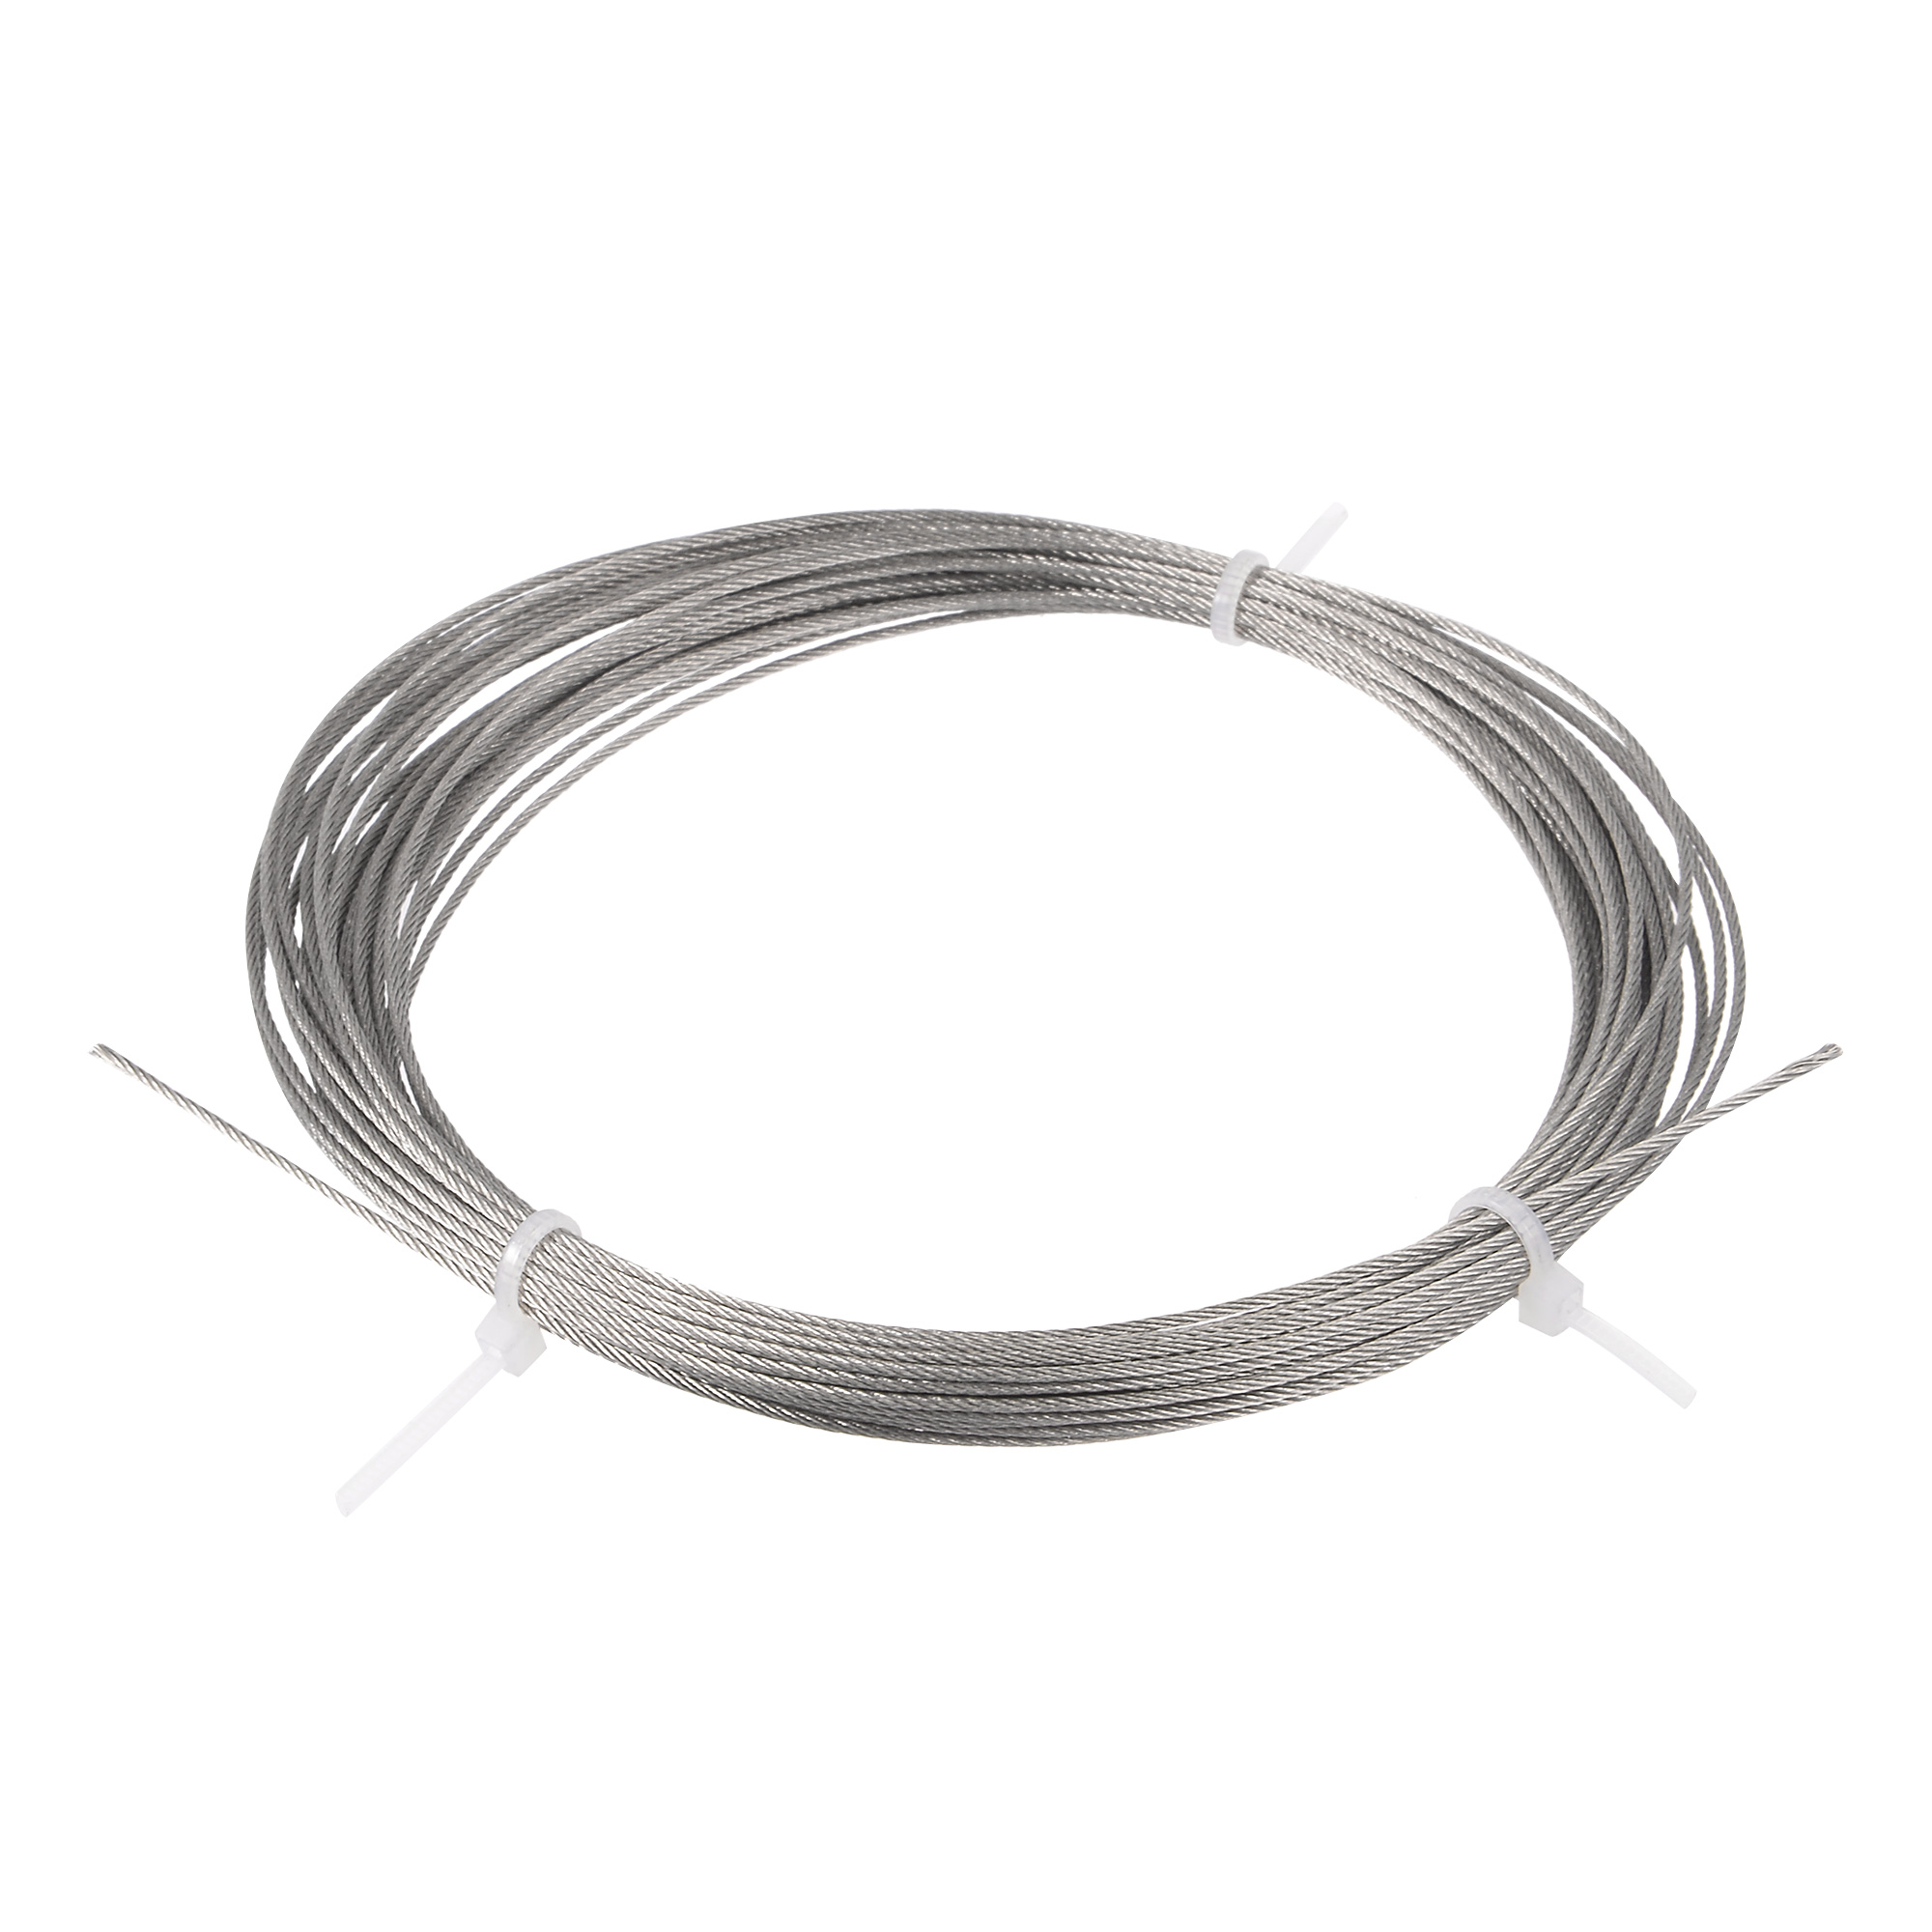 Grinding Machine 1mm Dia 7x7 10M Long Stainless Steel Wire Rope Cable